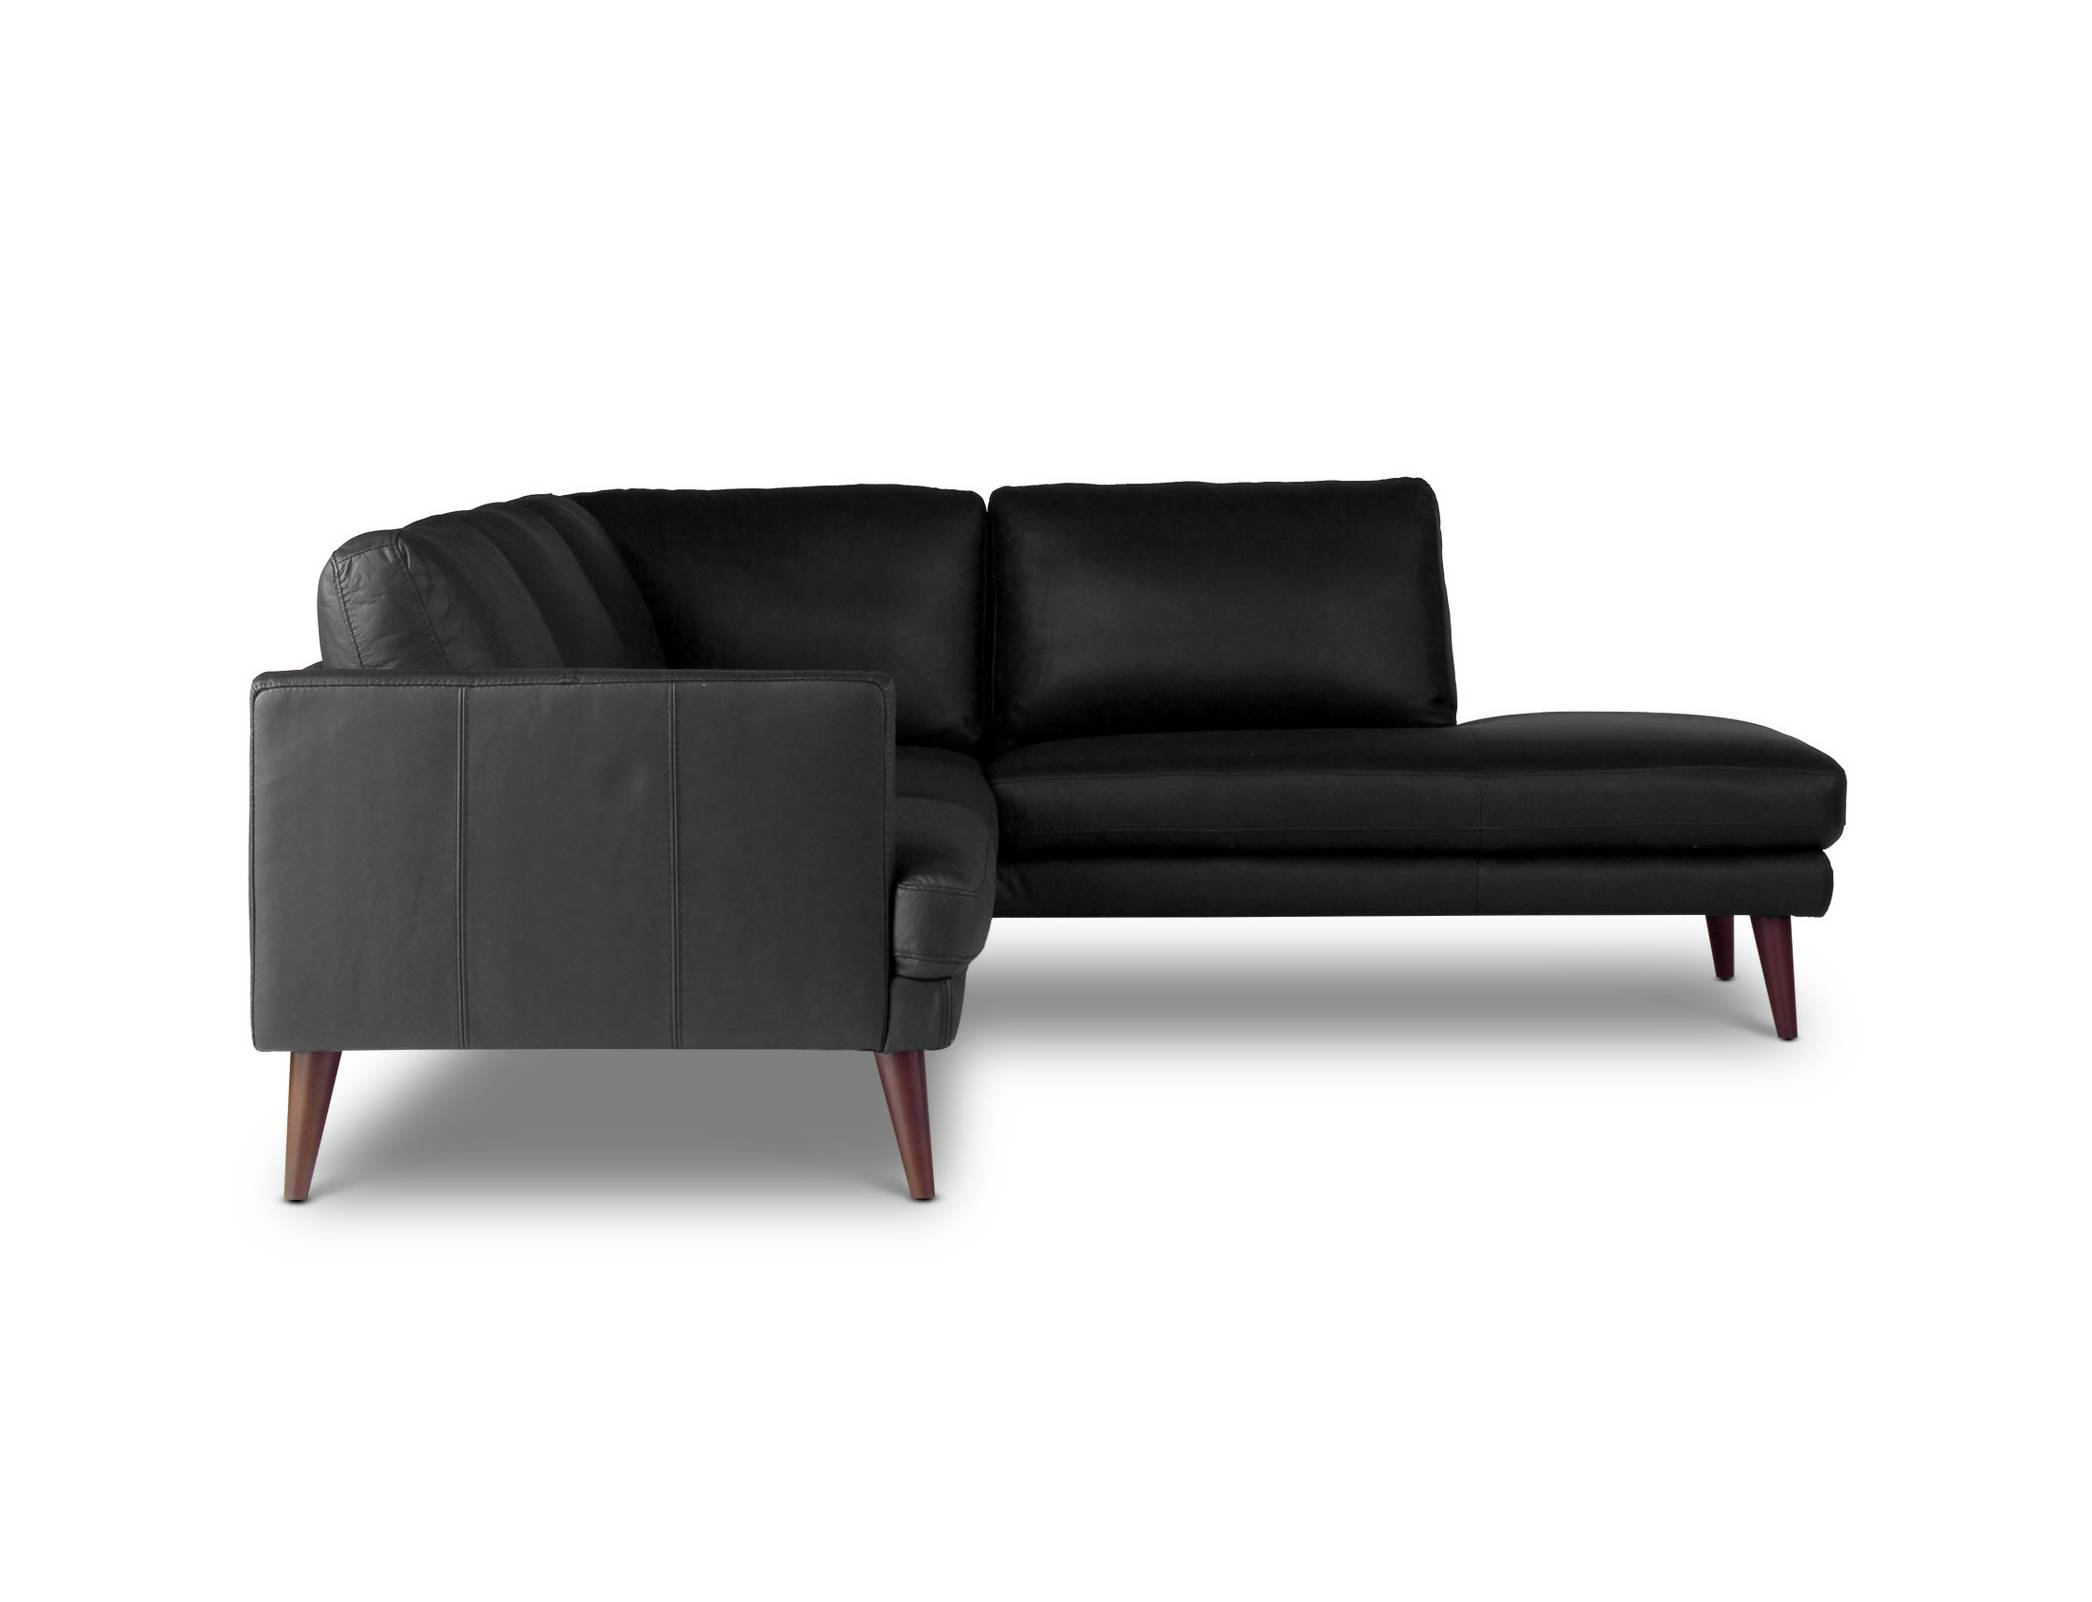 Hugo Leather - Corner Sofa | Loungelovers within Corner Sofa Leather (Image 10 of 30)